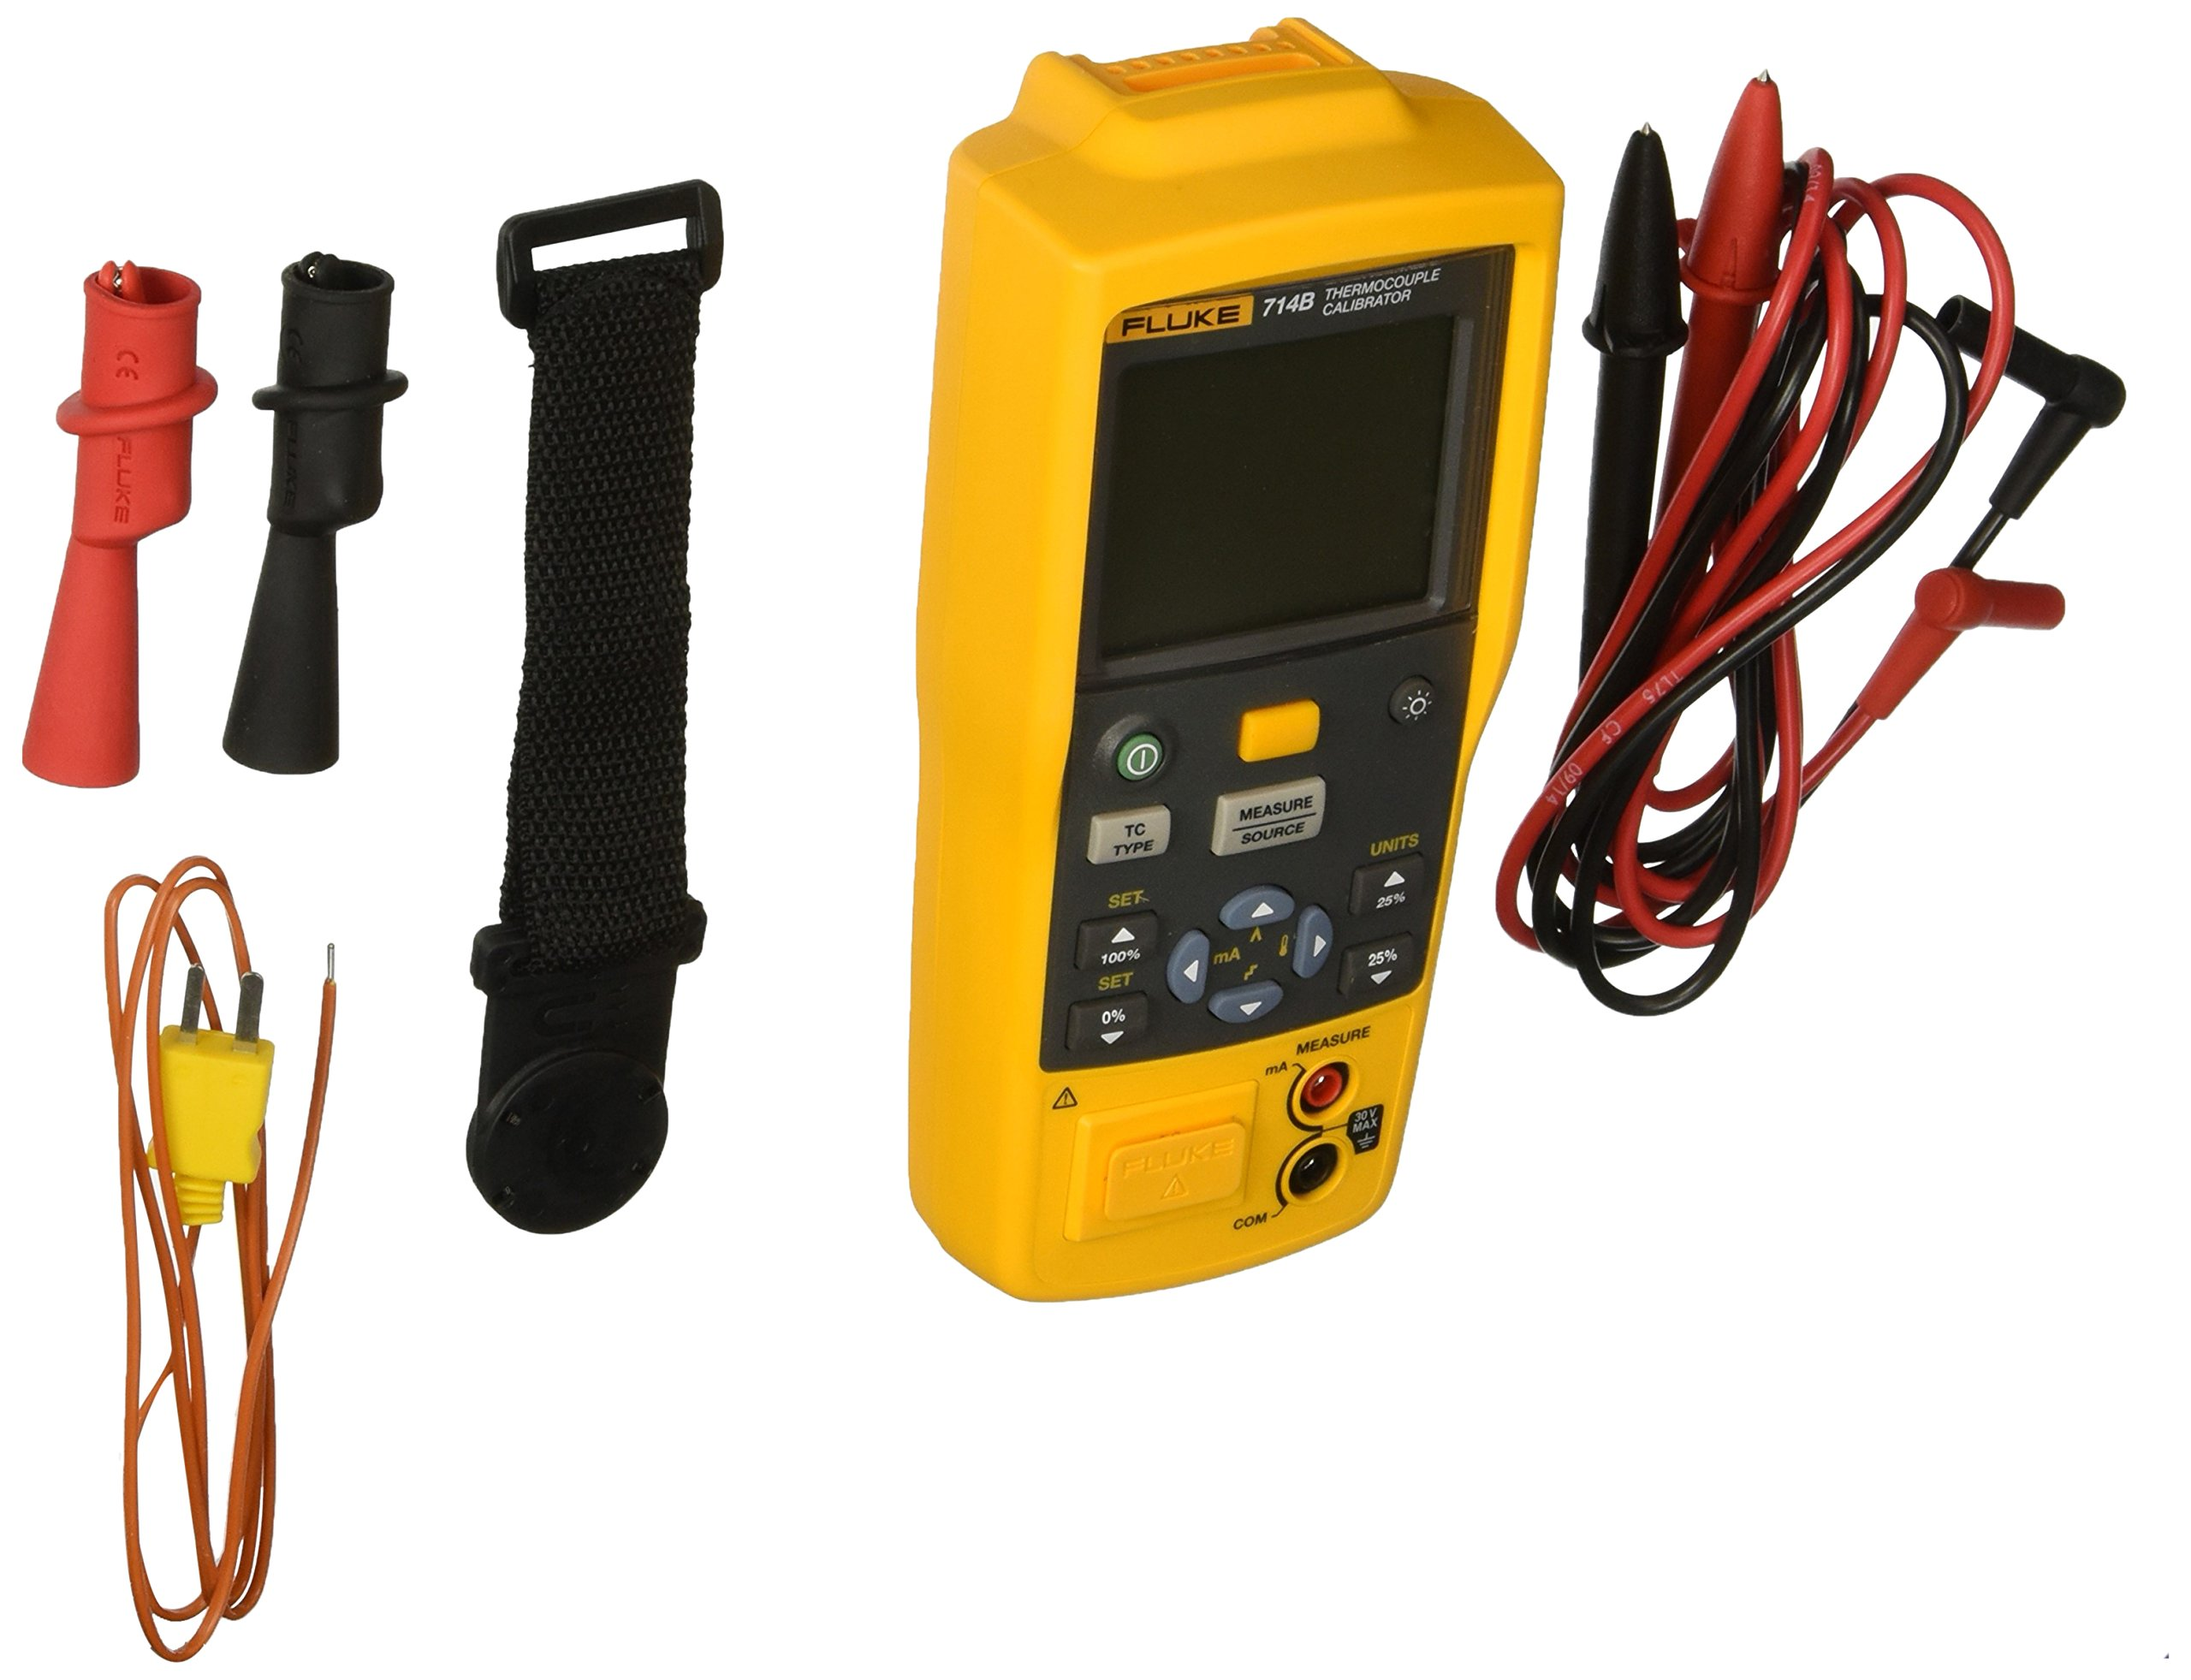 Fluke 714B Thermocouple Calibrator, Yellow/Brown/Black/Red